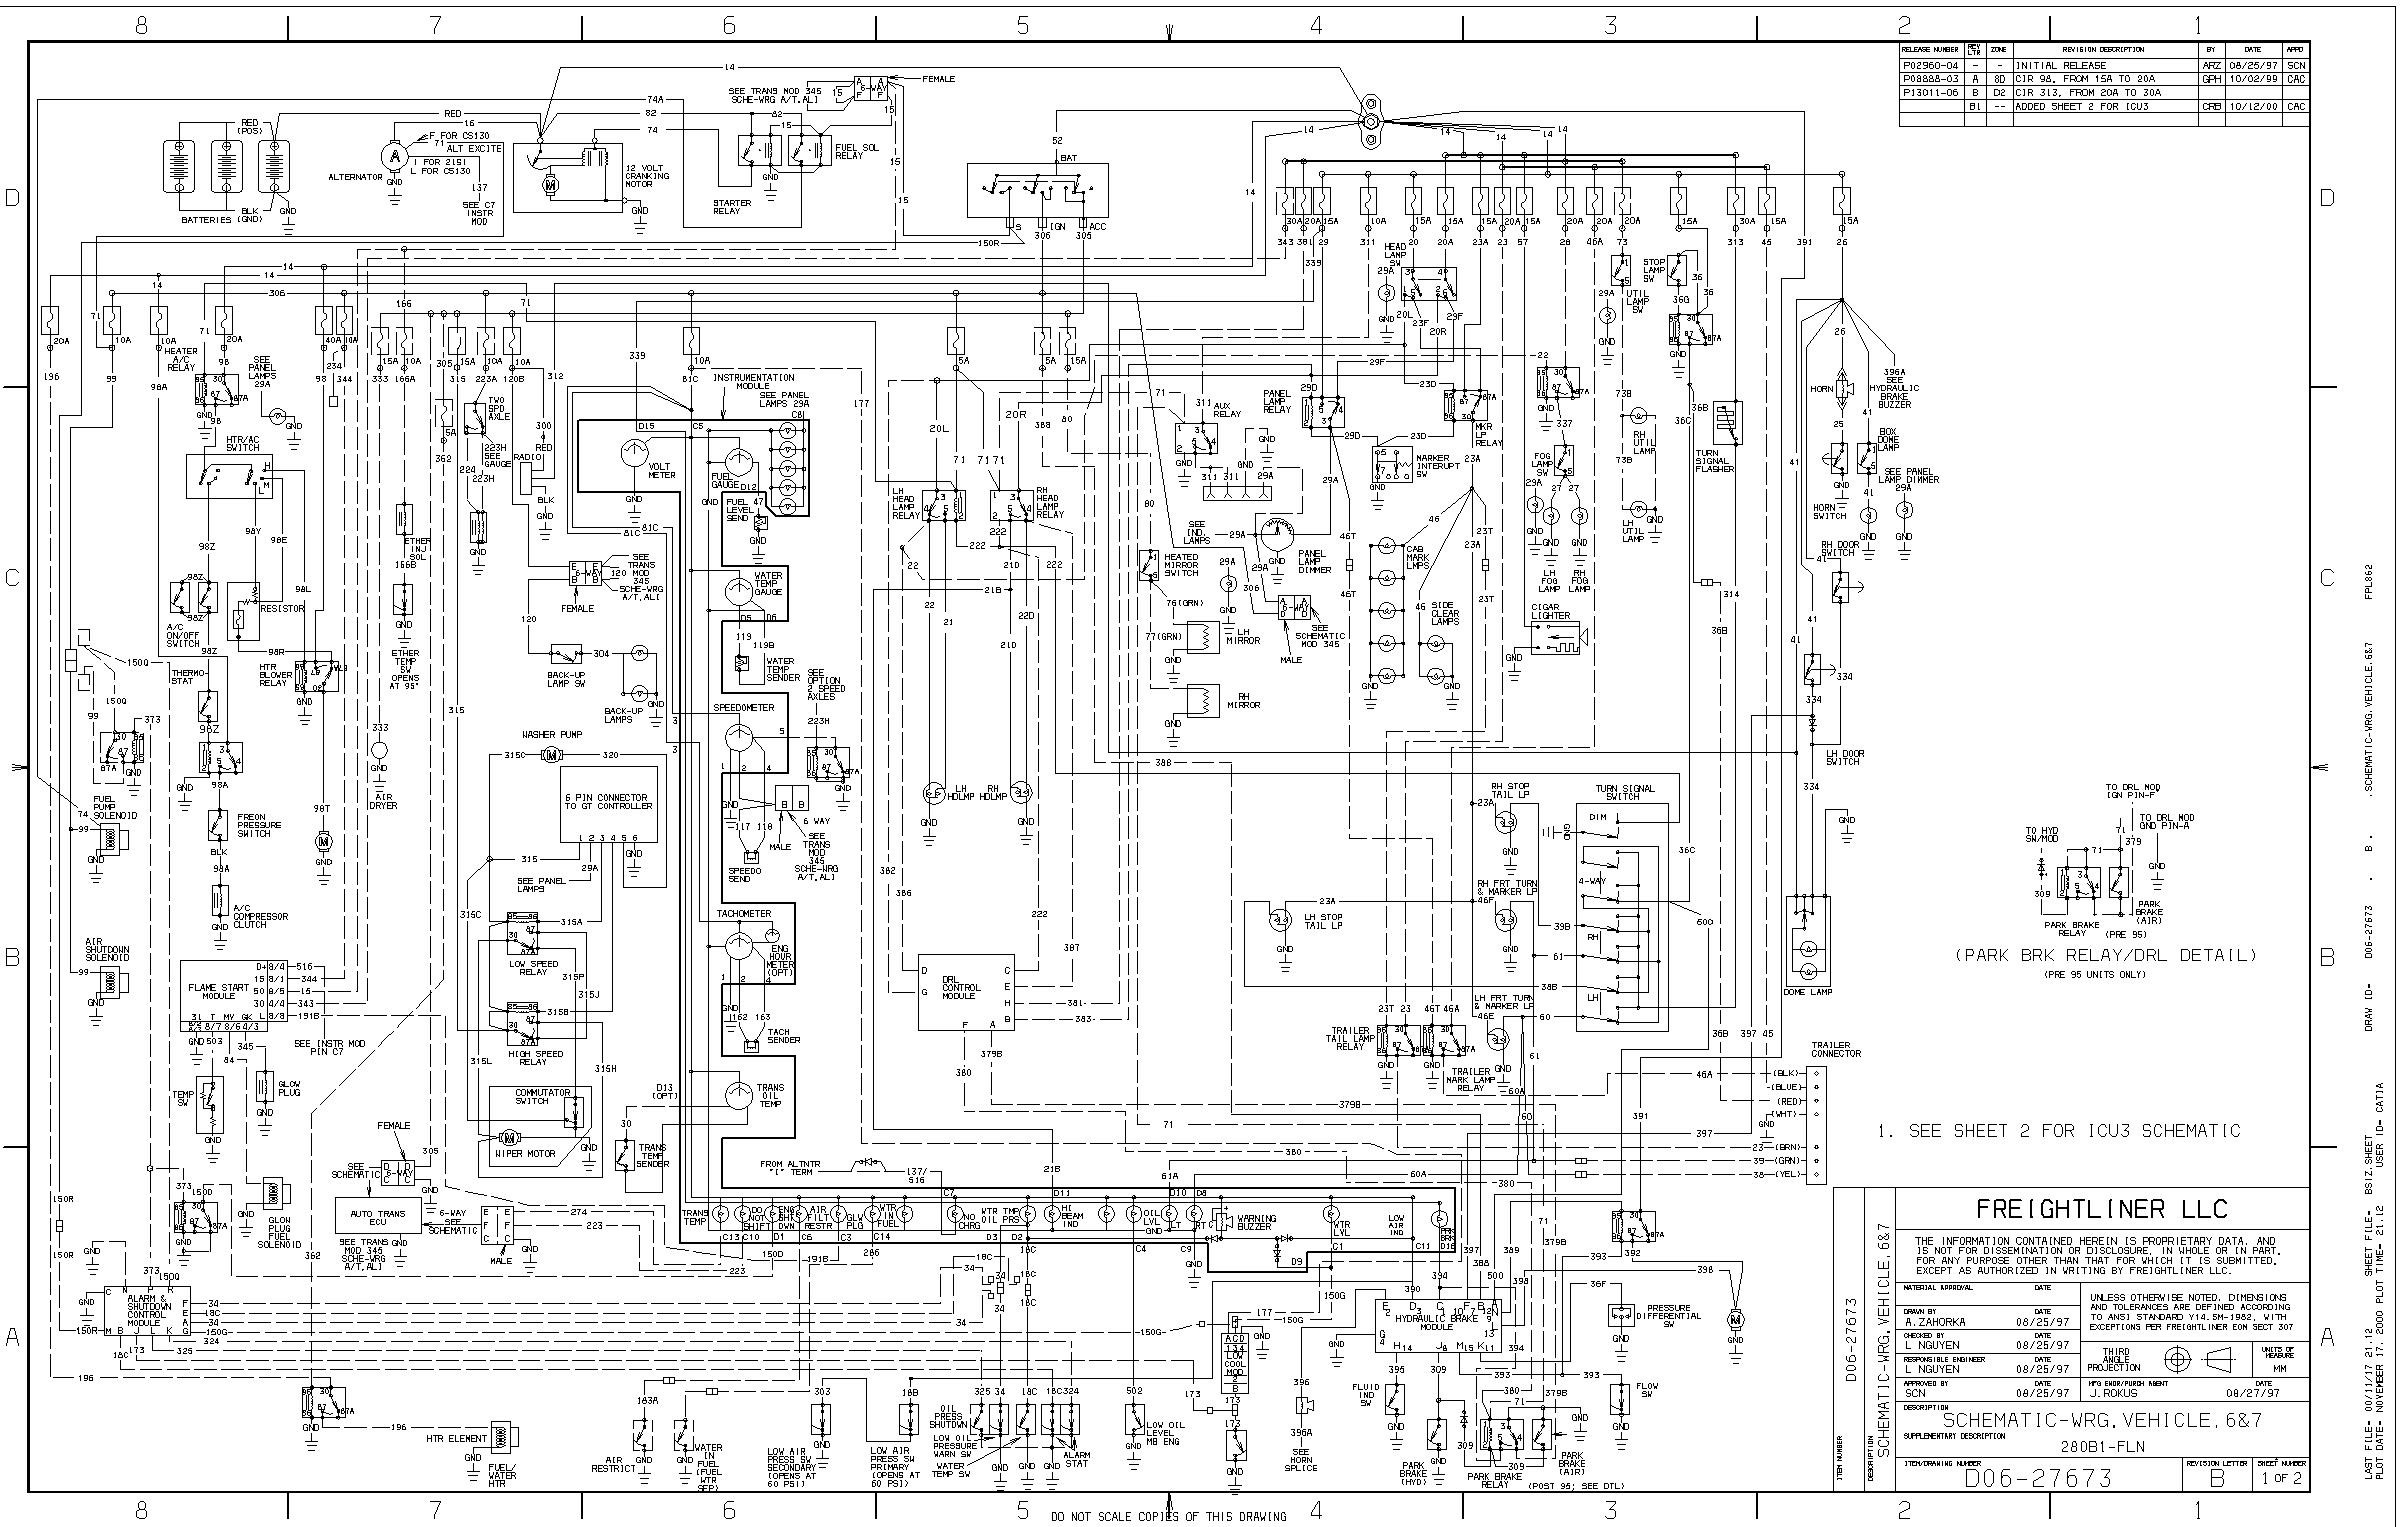 freightliner chassis wiring diagram part 59 find out